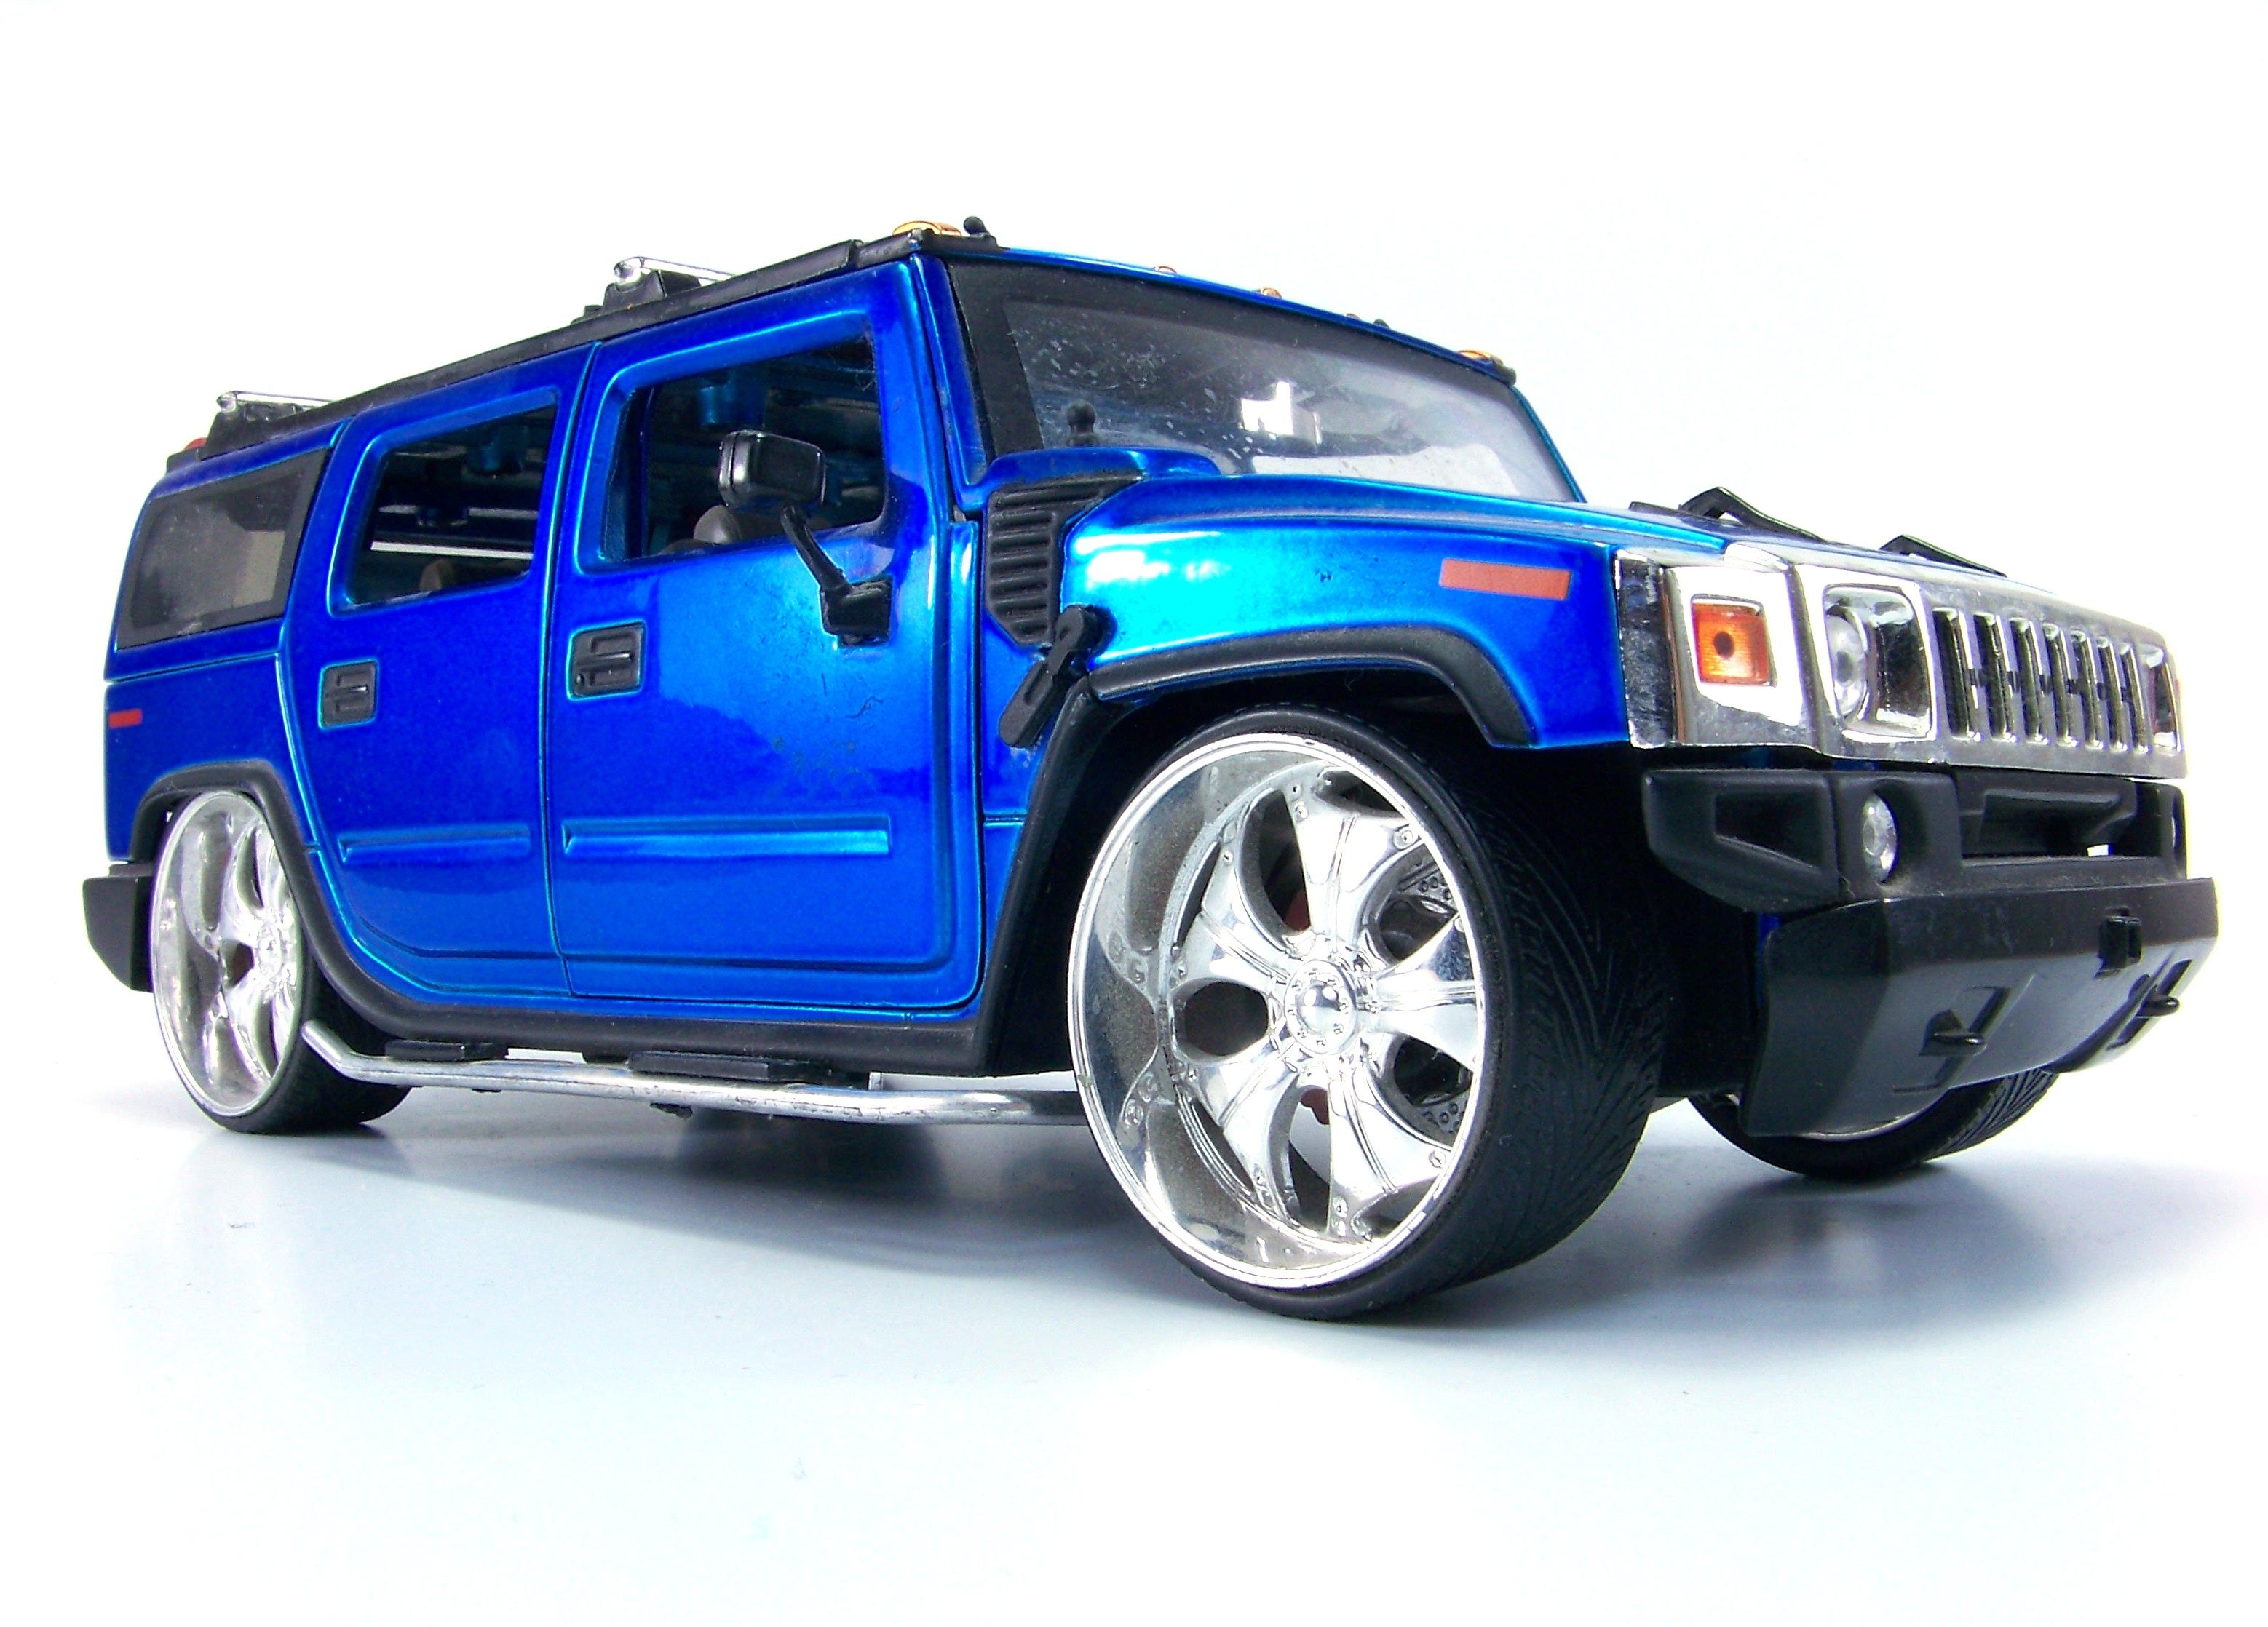 Hummer truck car cars auto automobile vehicle vehicles